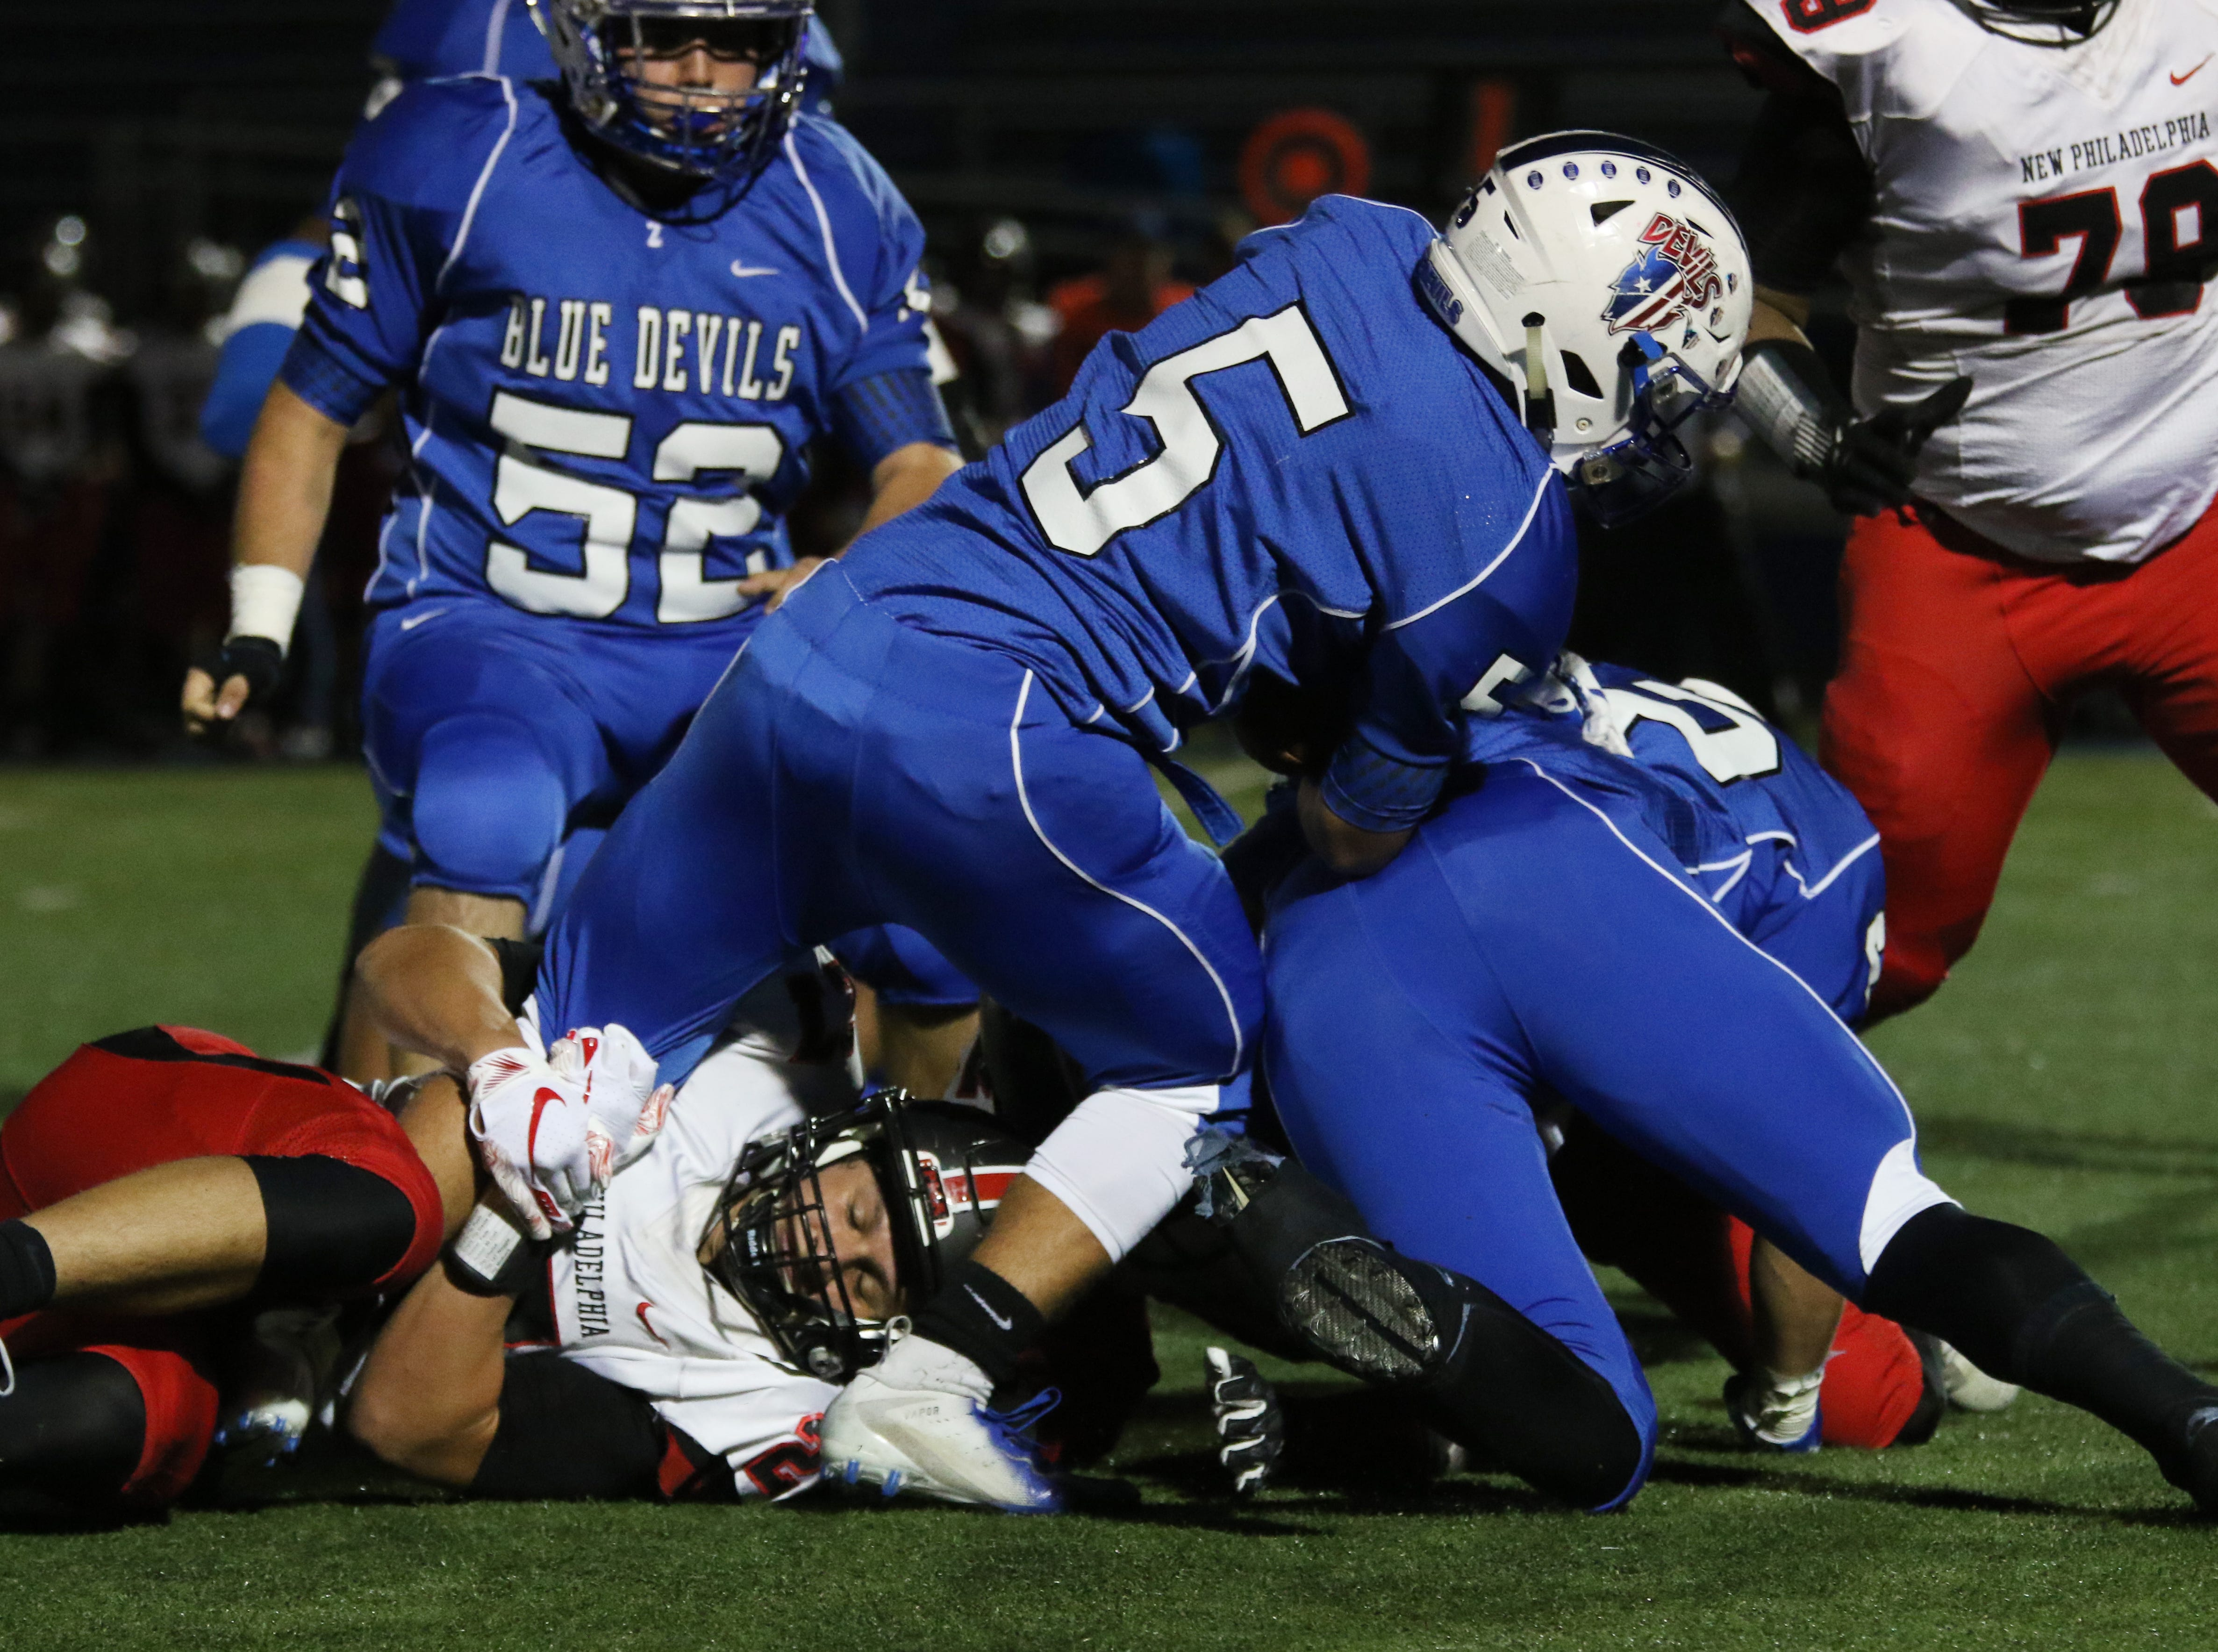 Zanesville's JC Curtis carries the ball against New Philadelphia.